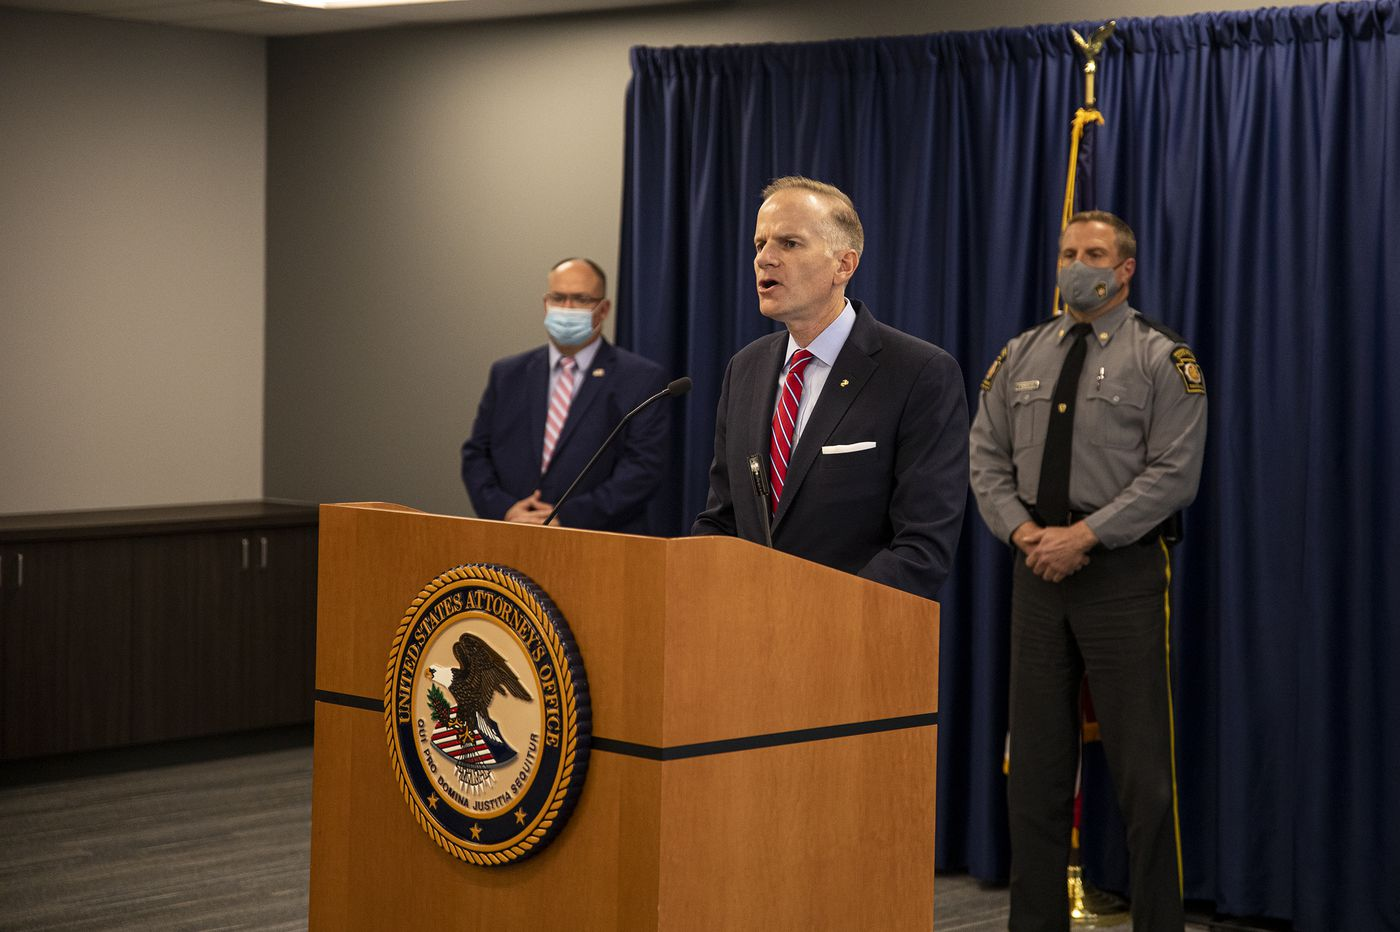 Federal prosecutors charge 15 alleged Philly mobsters with racketeering, drug dealing and extortion